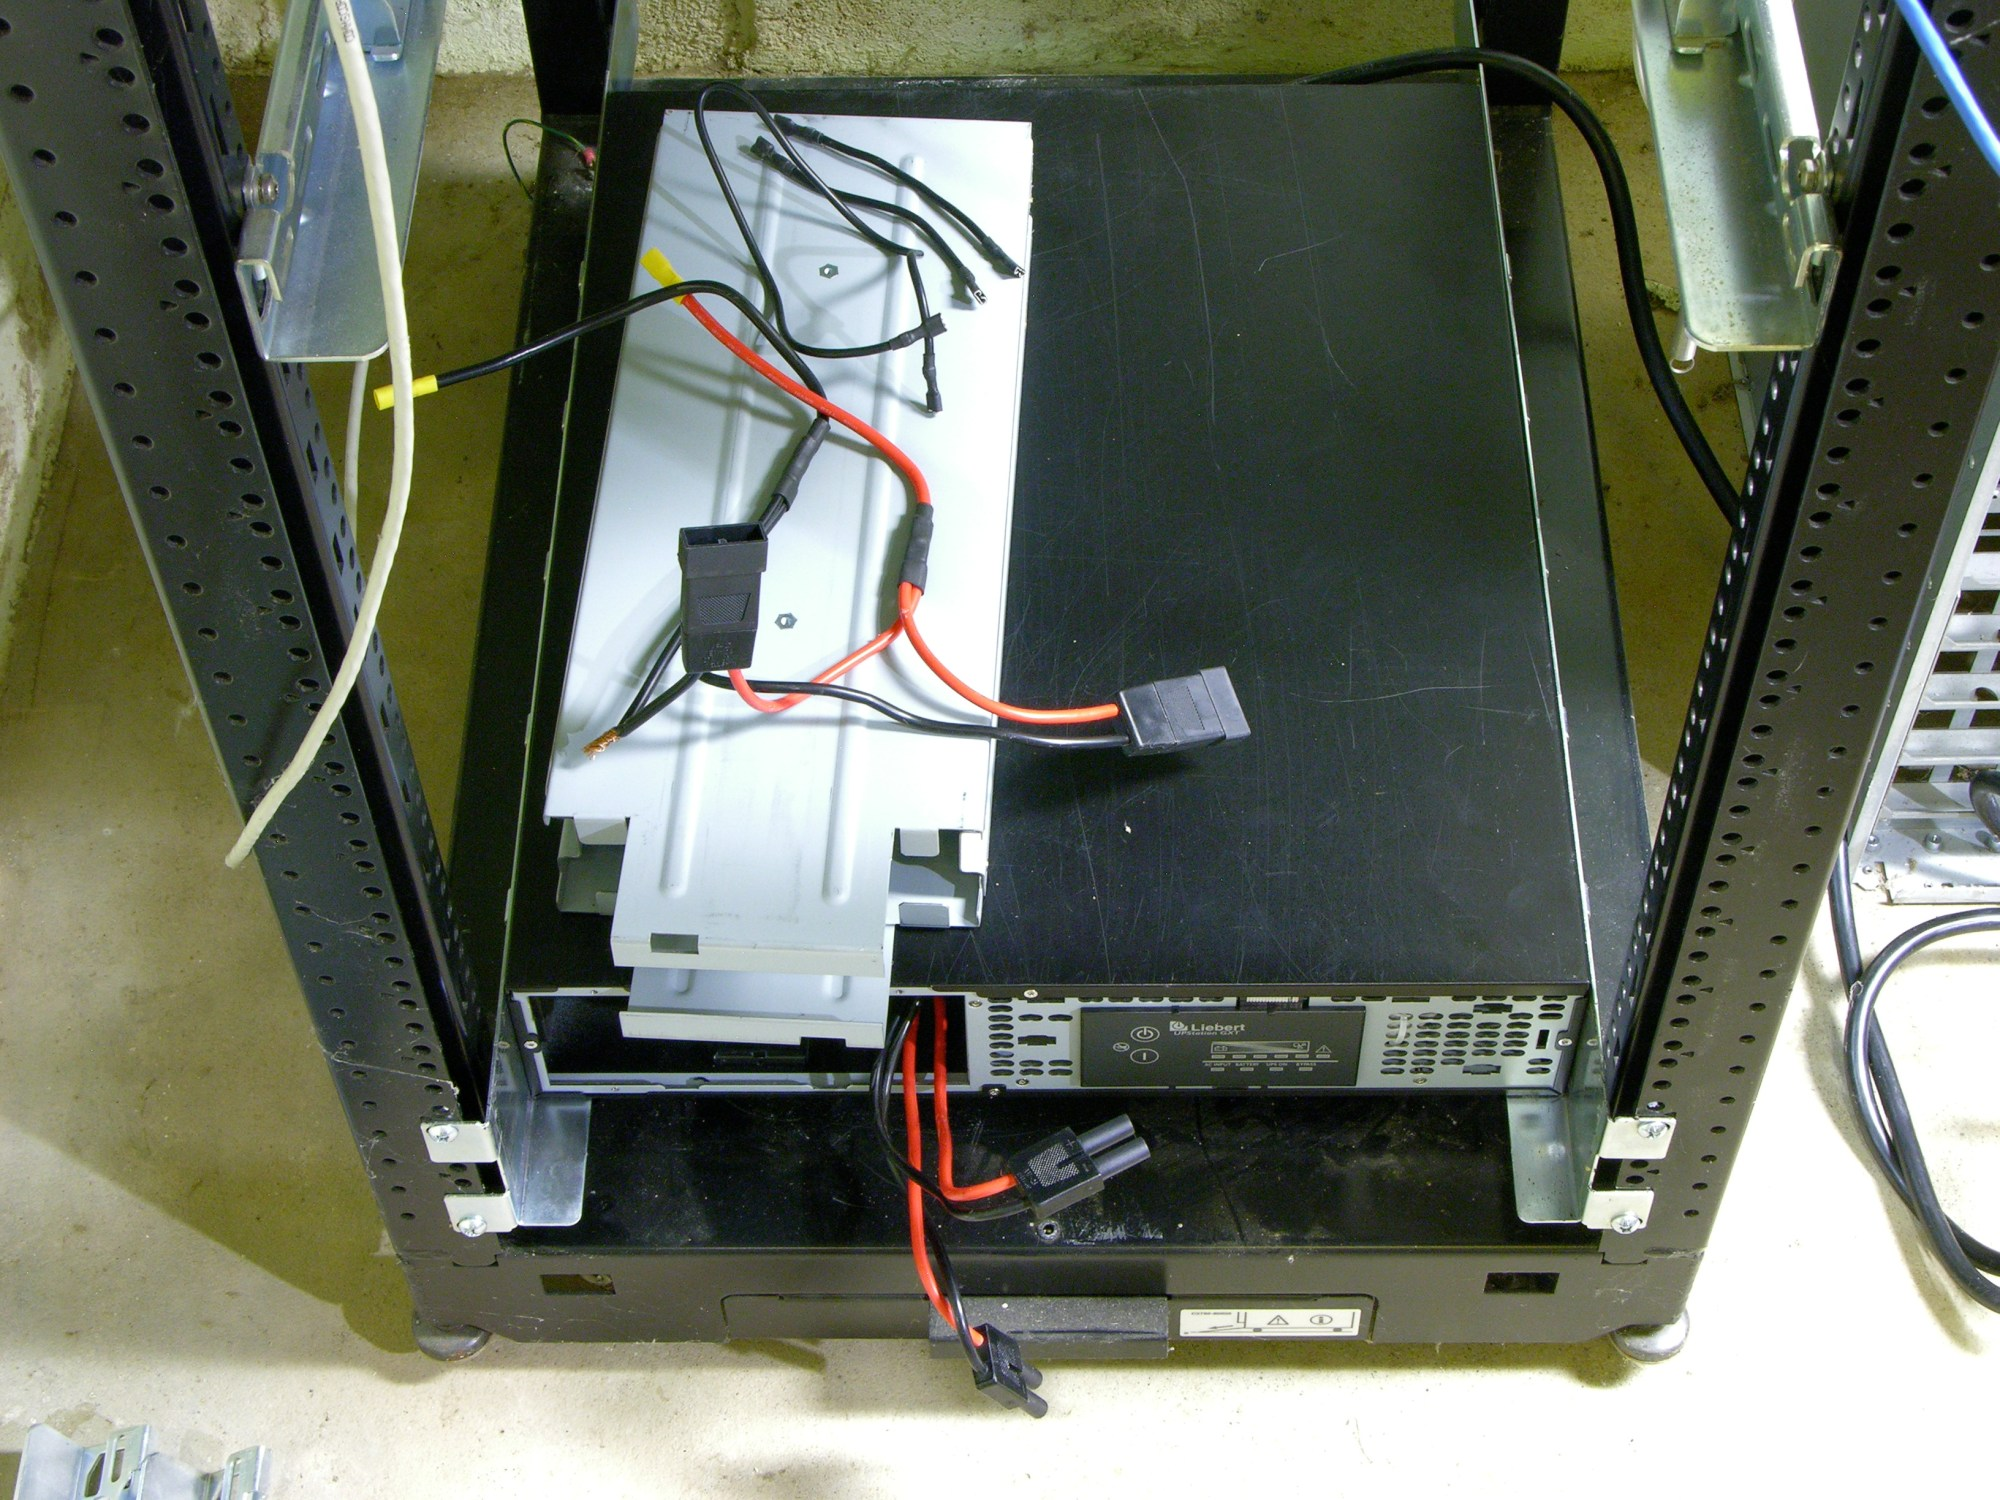 hight resolution of liebert gxt2 2000rt120 ups with battery cage disassembled